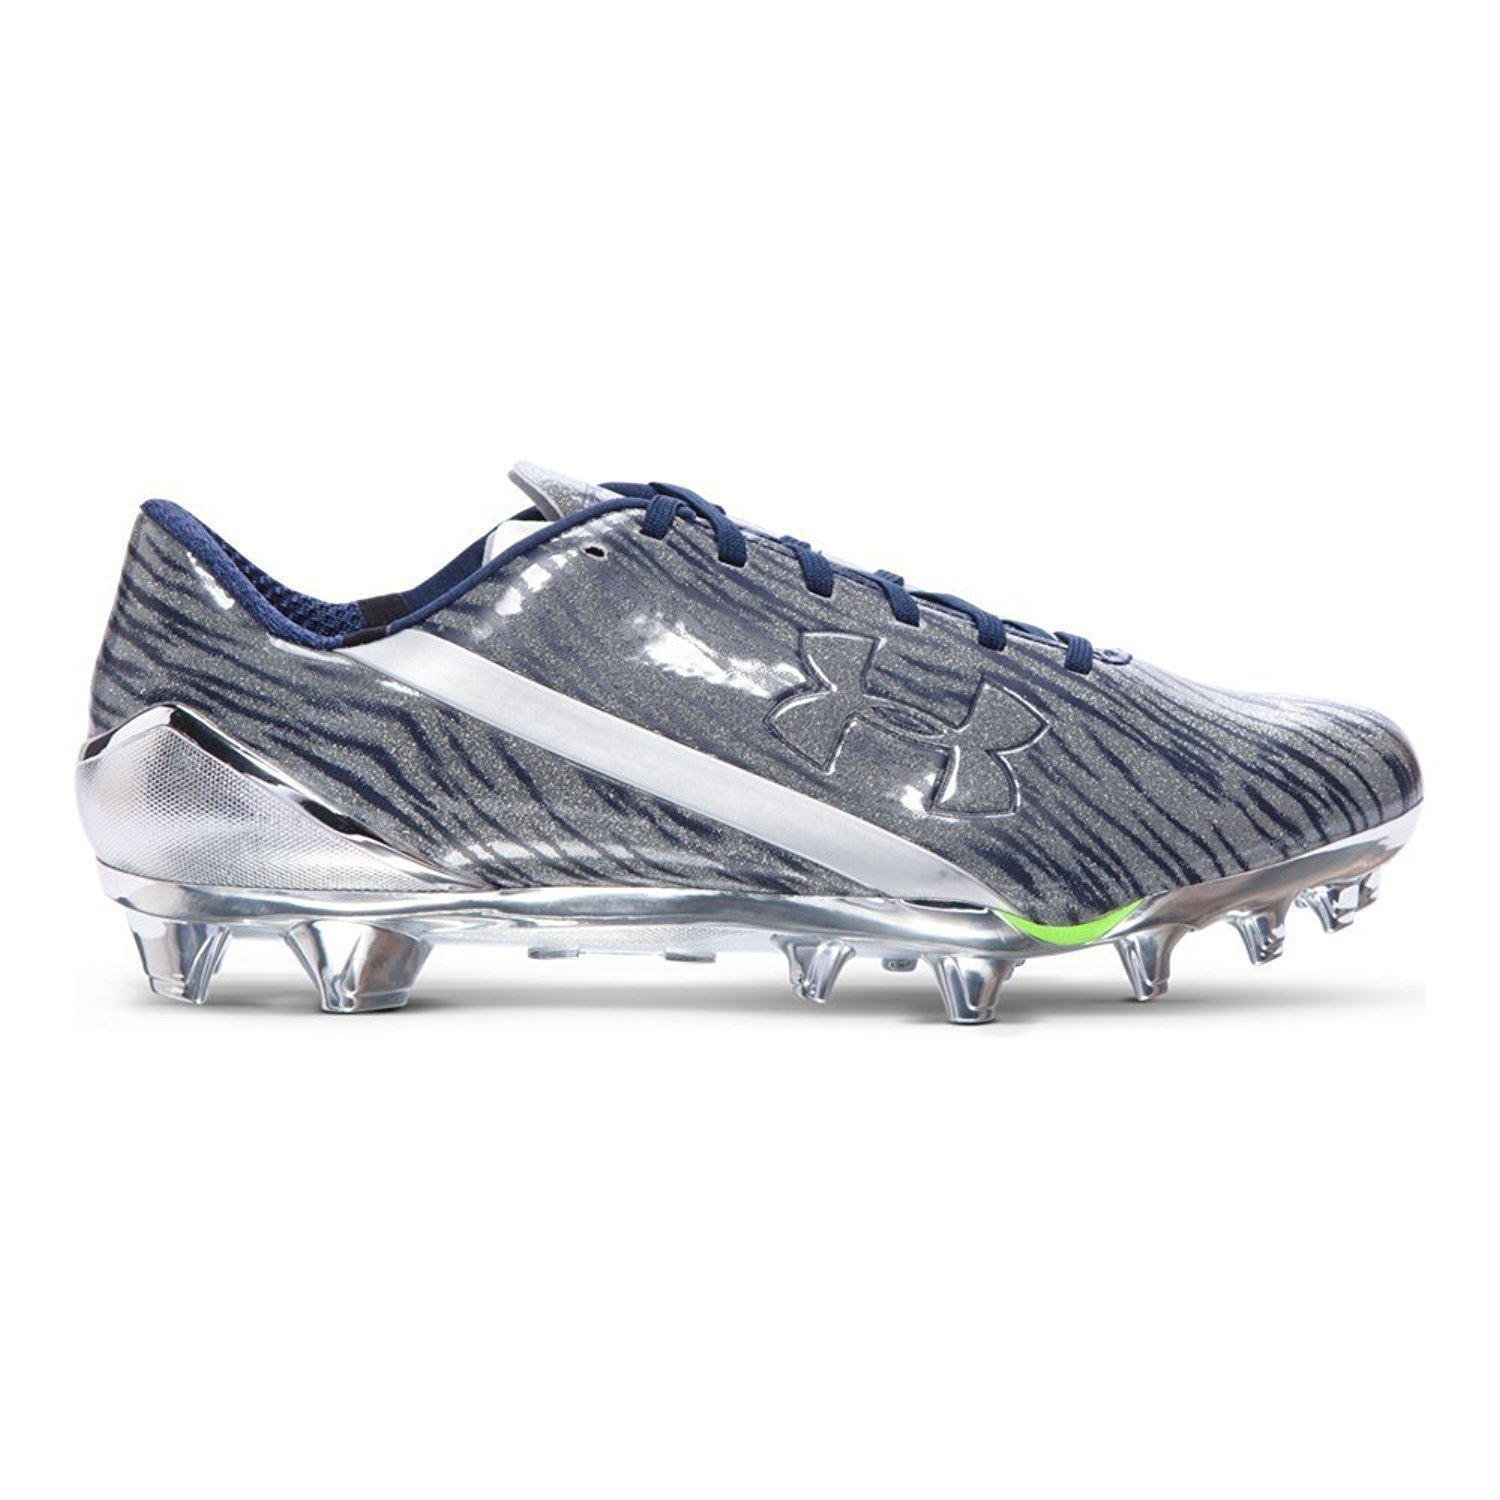 Under Armour Men's UA Spotlight Football Cleats 1280533 241 (Metallic Silver/ Midnight Navy, 12 D(M) US)